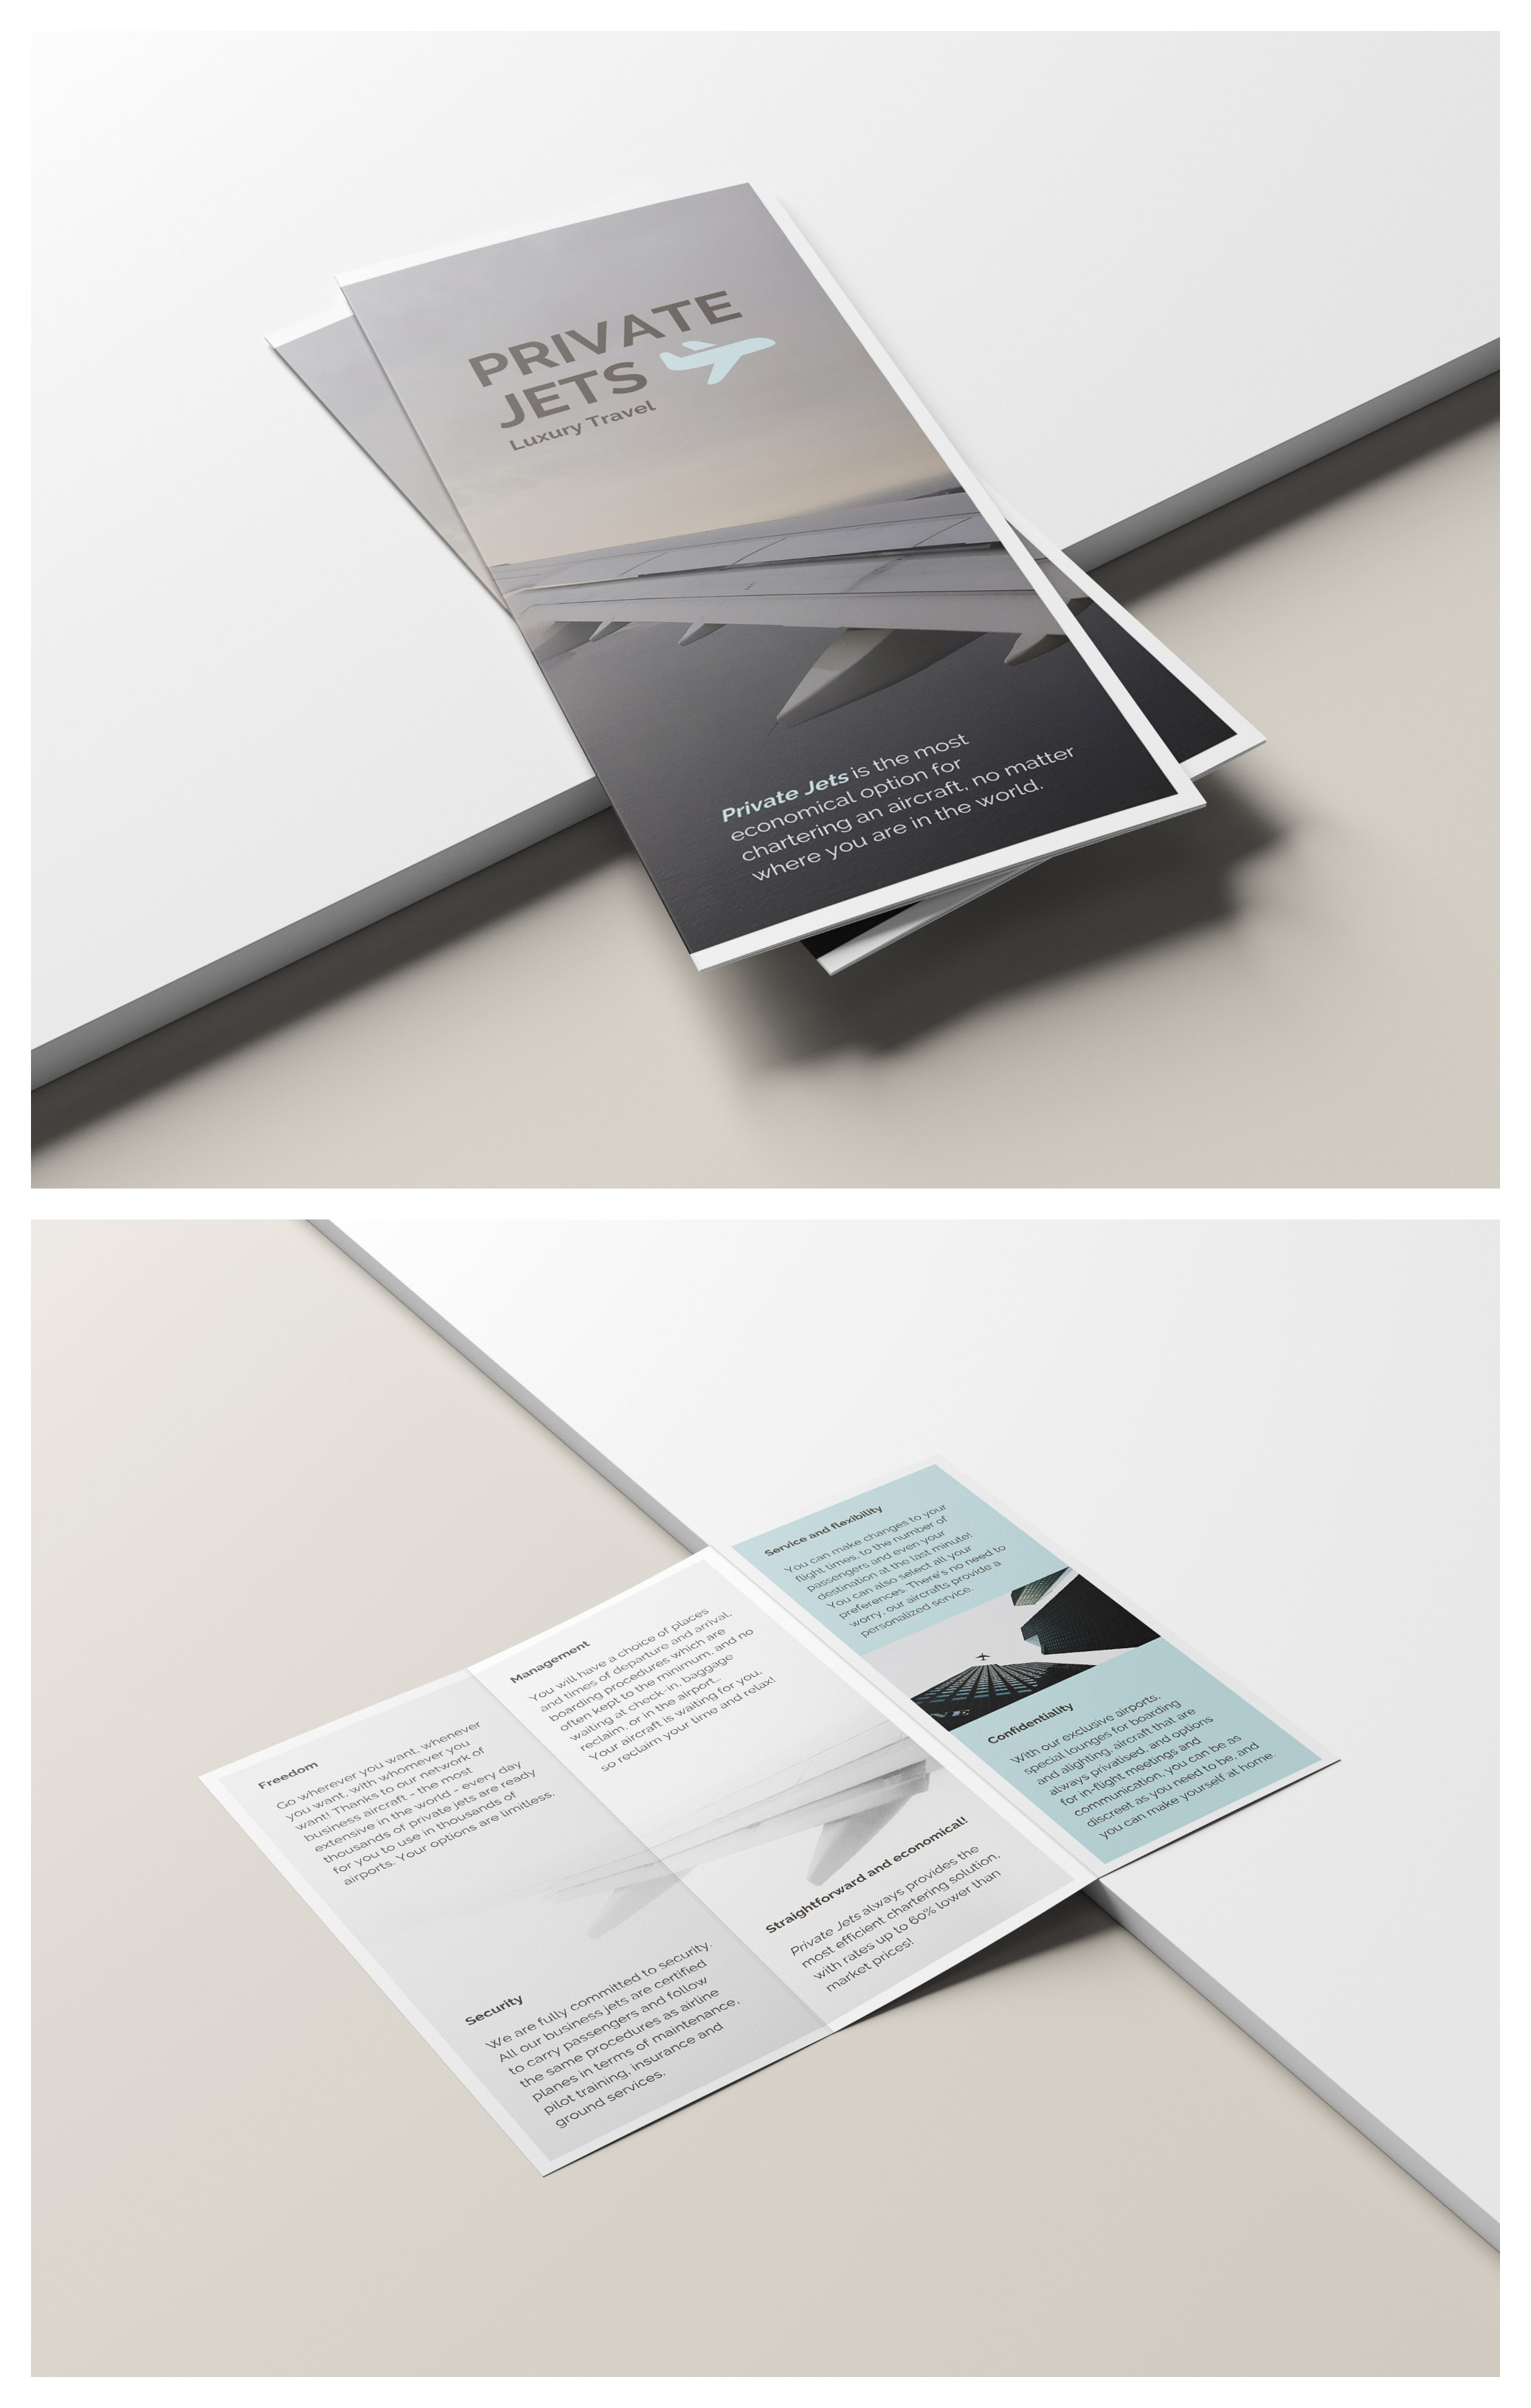 75 Brochure Ideas To Inspire Your Next Design Project Venngage Gallery